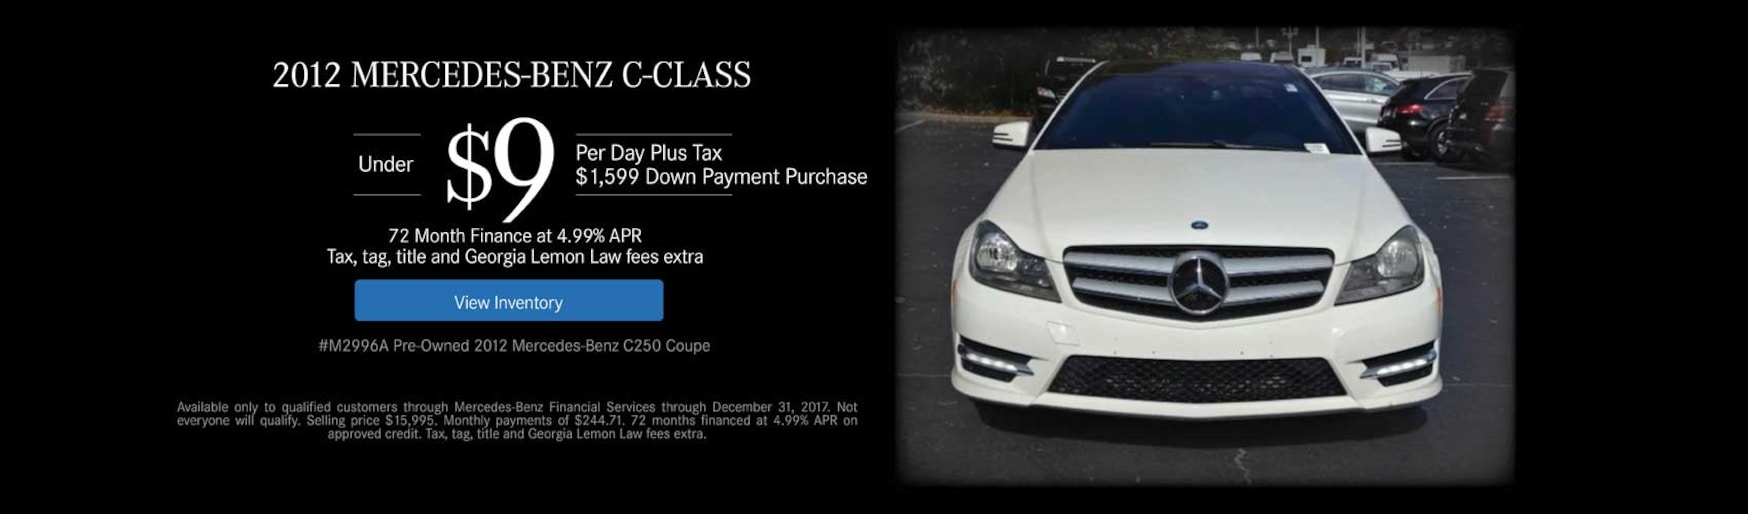 Atlanta mercedes benz dealership new used luxury cars for Mercedes benz dealers atlanta